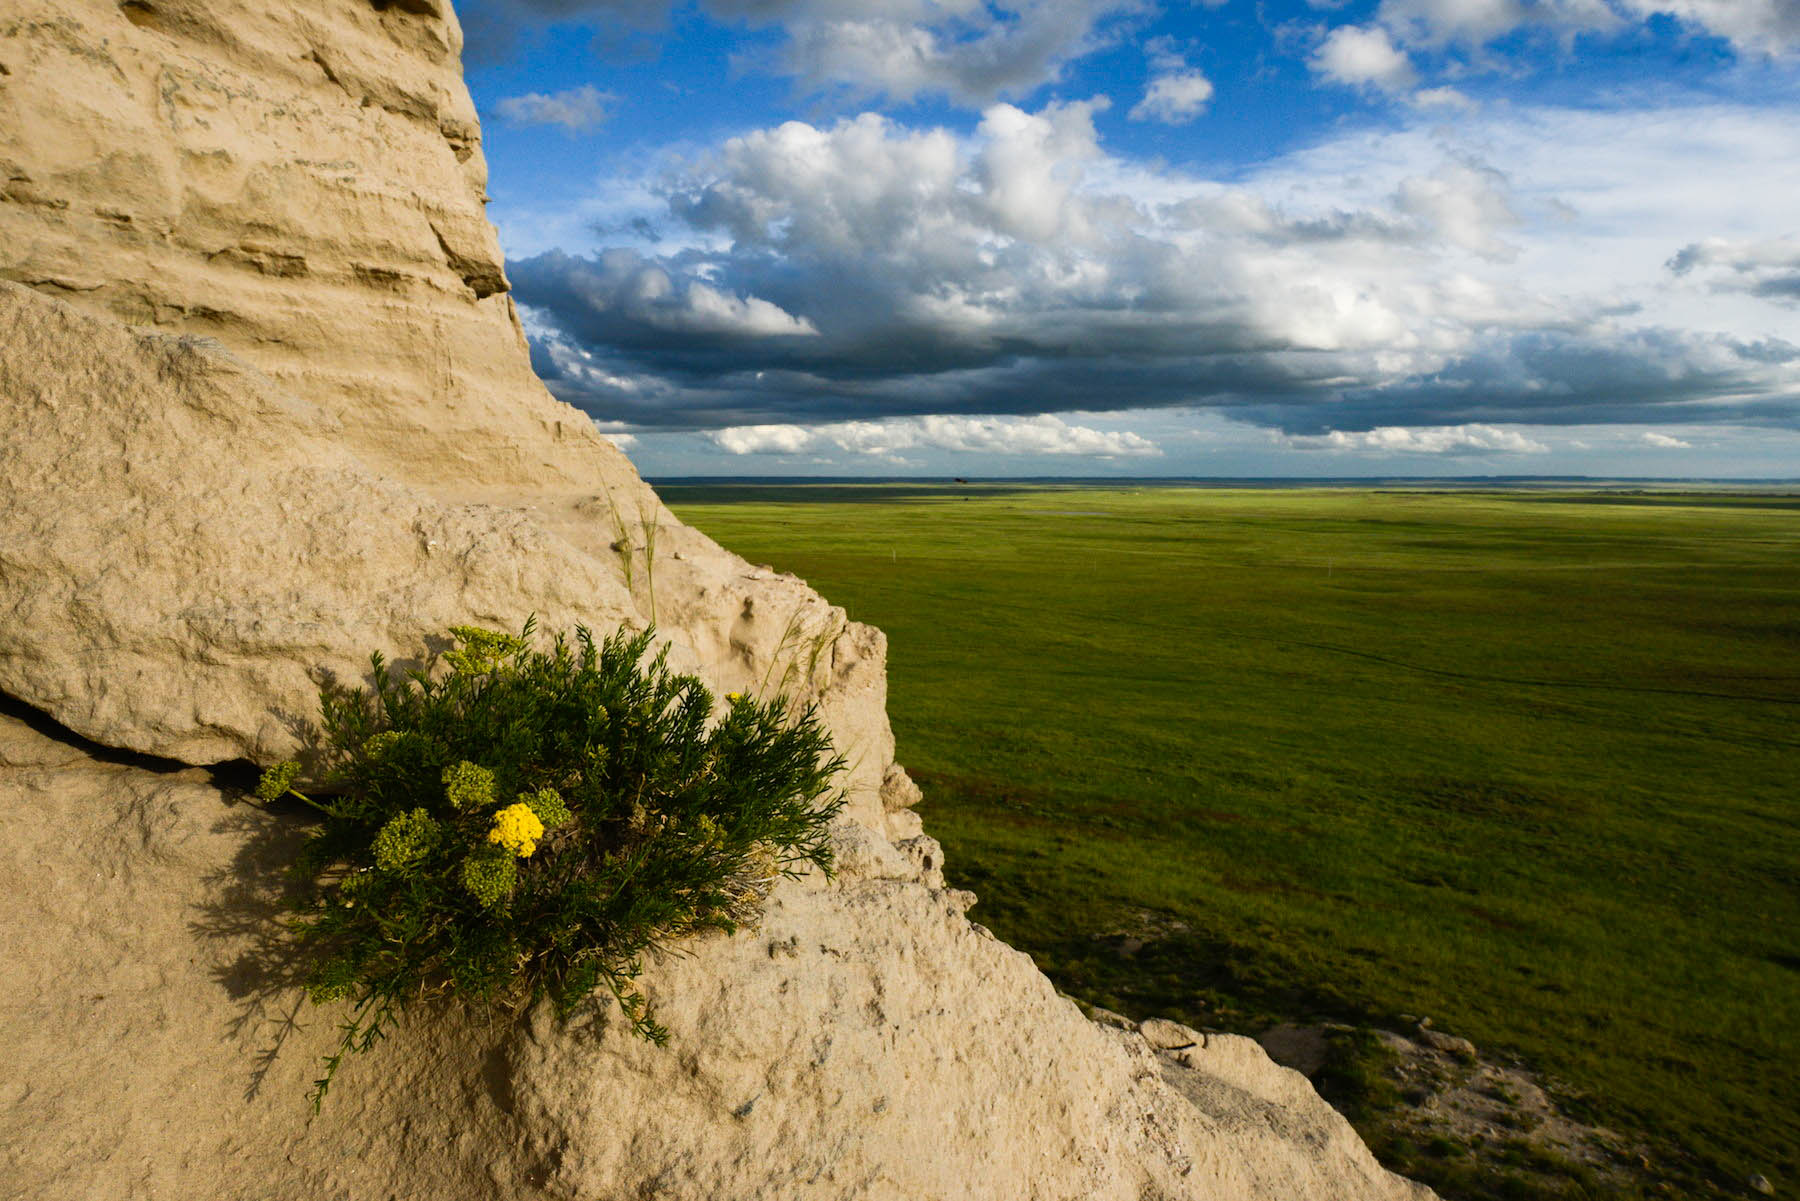 A wildflower boquet grows out of a crack in a sandstone butte in Nebraska's Wildcat Hills.